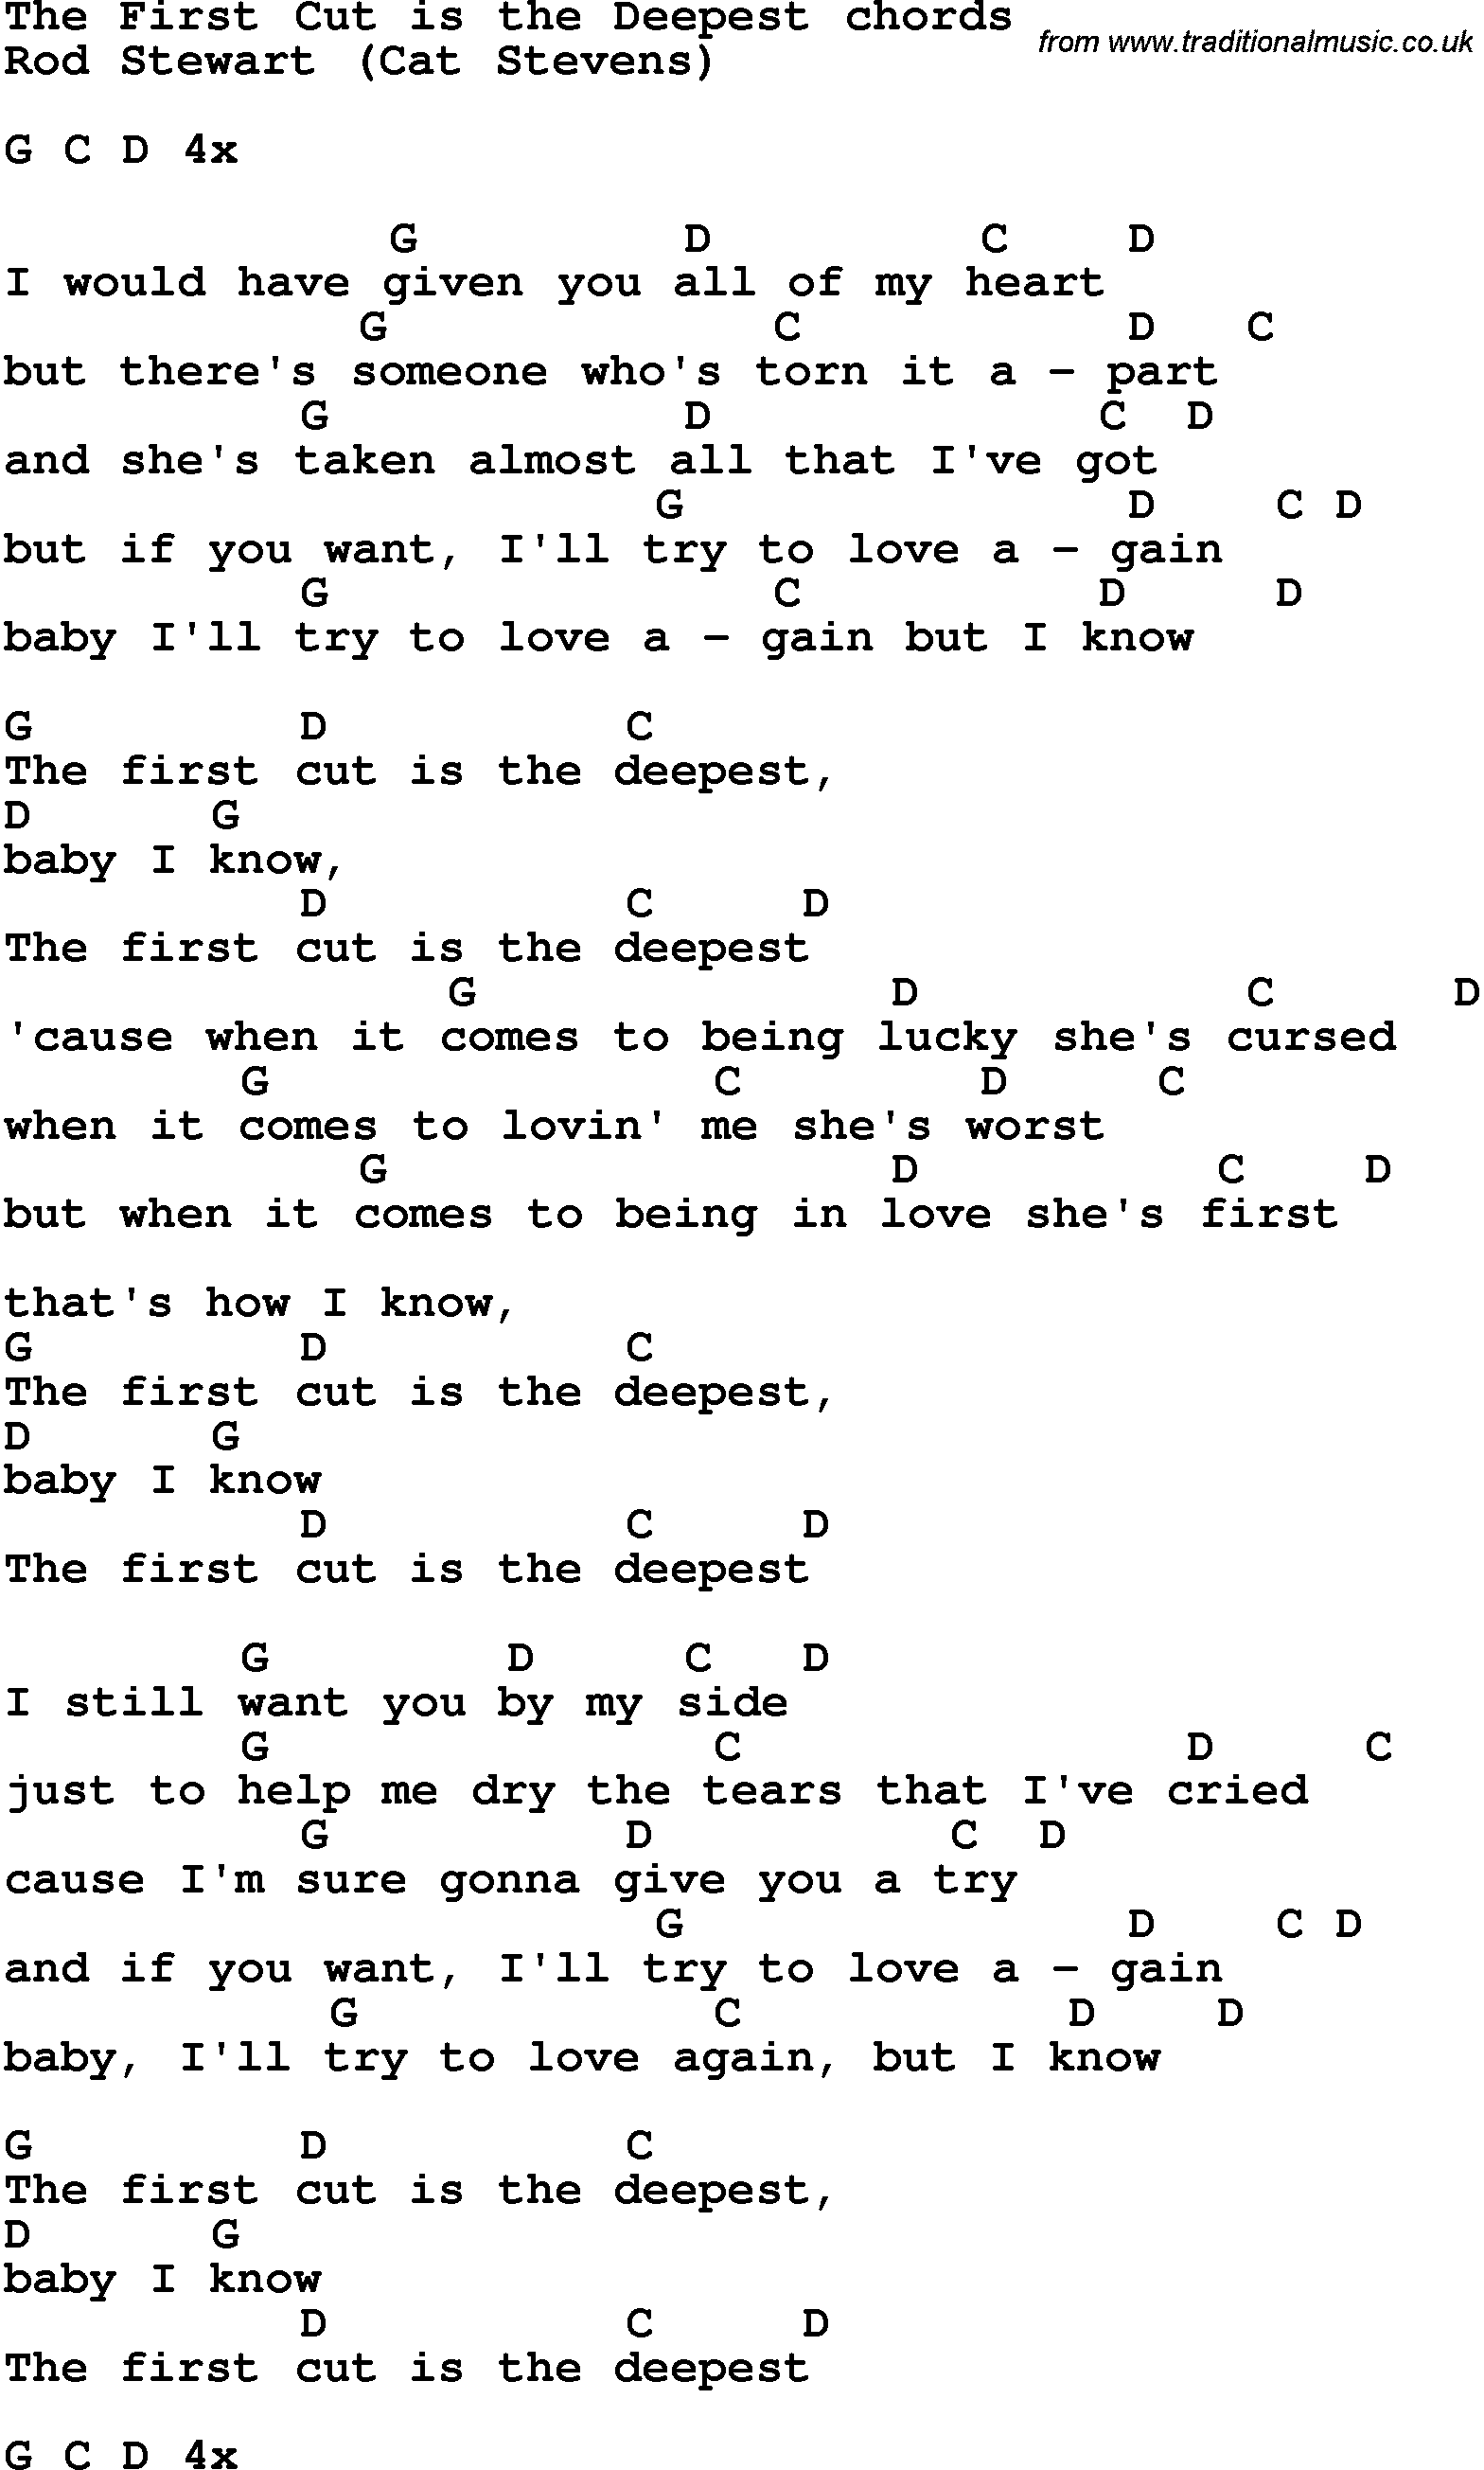 Song Lyrics With Guitar Chords For The First Cut Is The Deepest